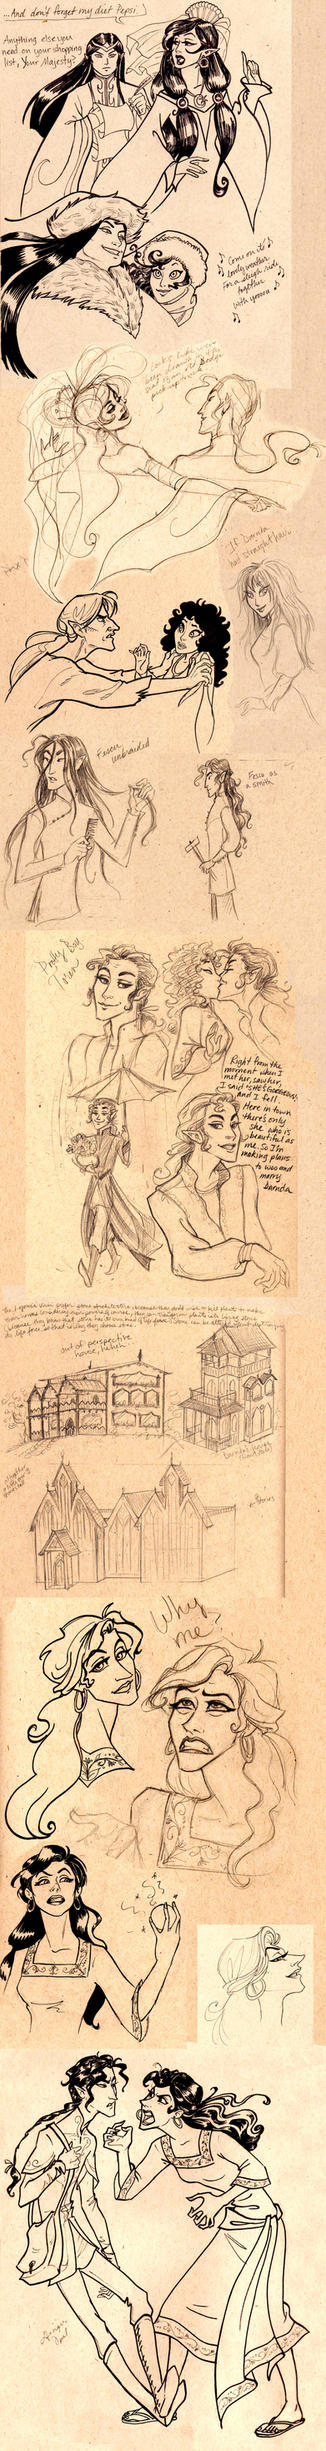 Another RnR Sketchdump by GingerOpal